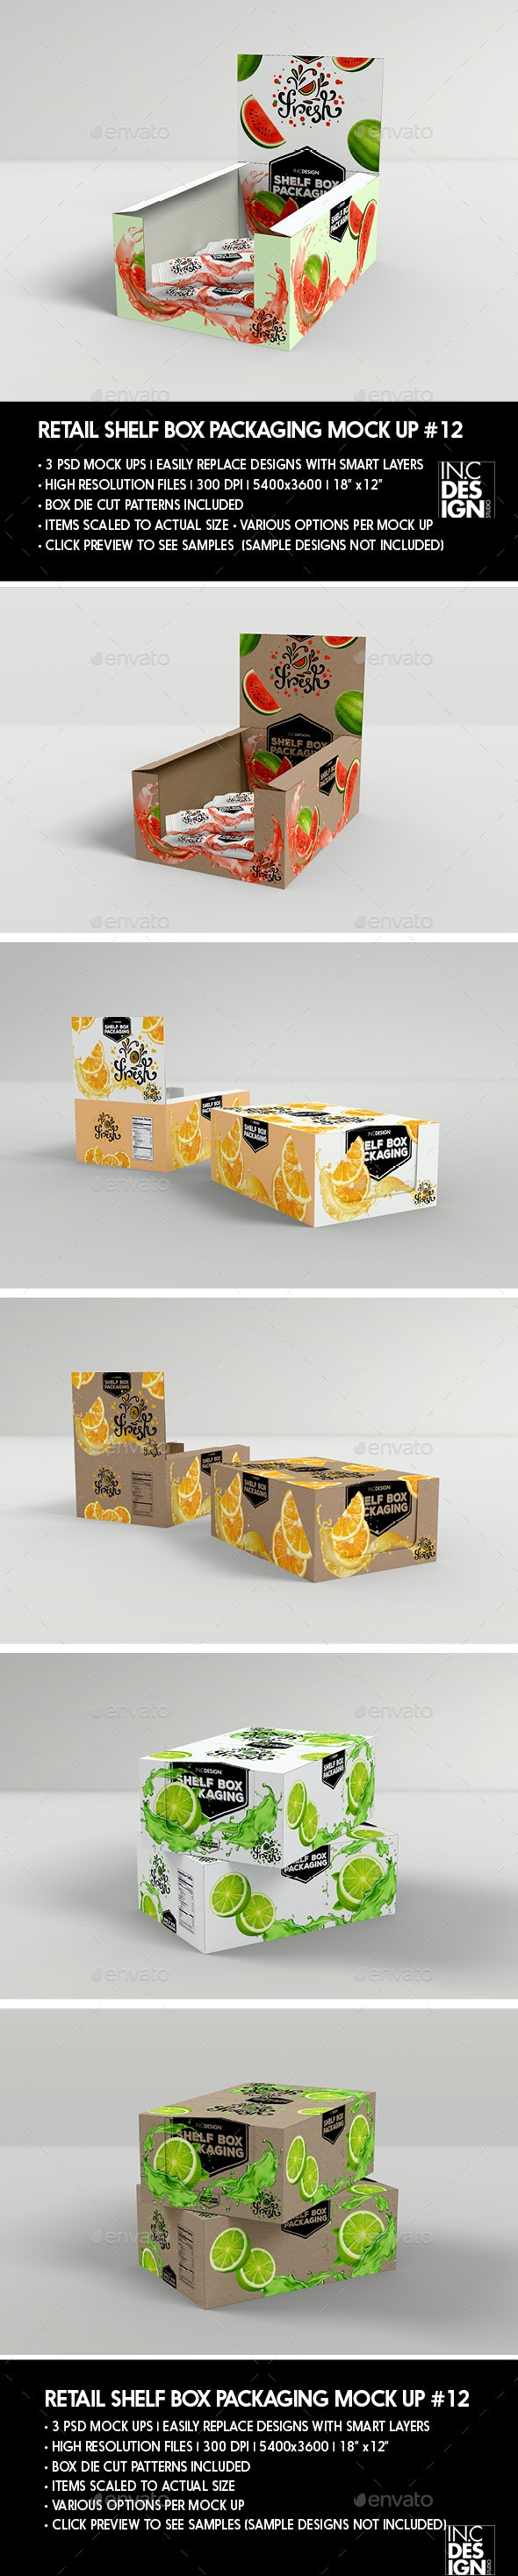 Retail Shelf Box Packaging MockUp No.12 - Food and Drink Packaging